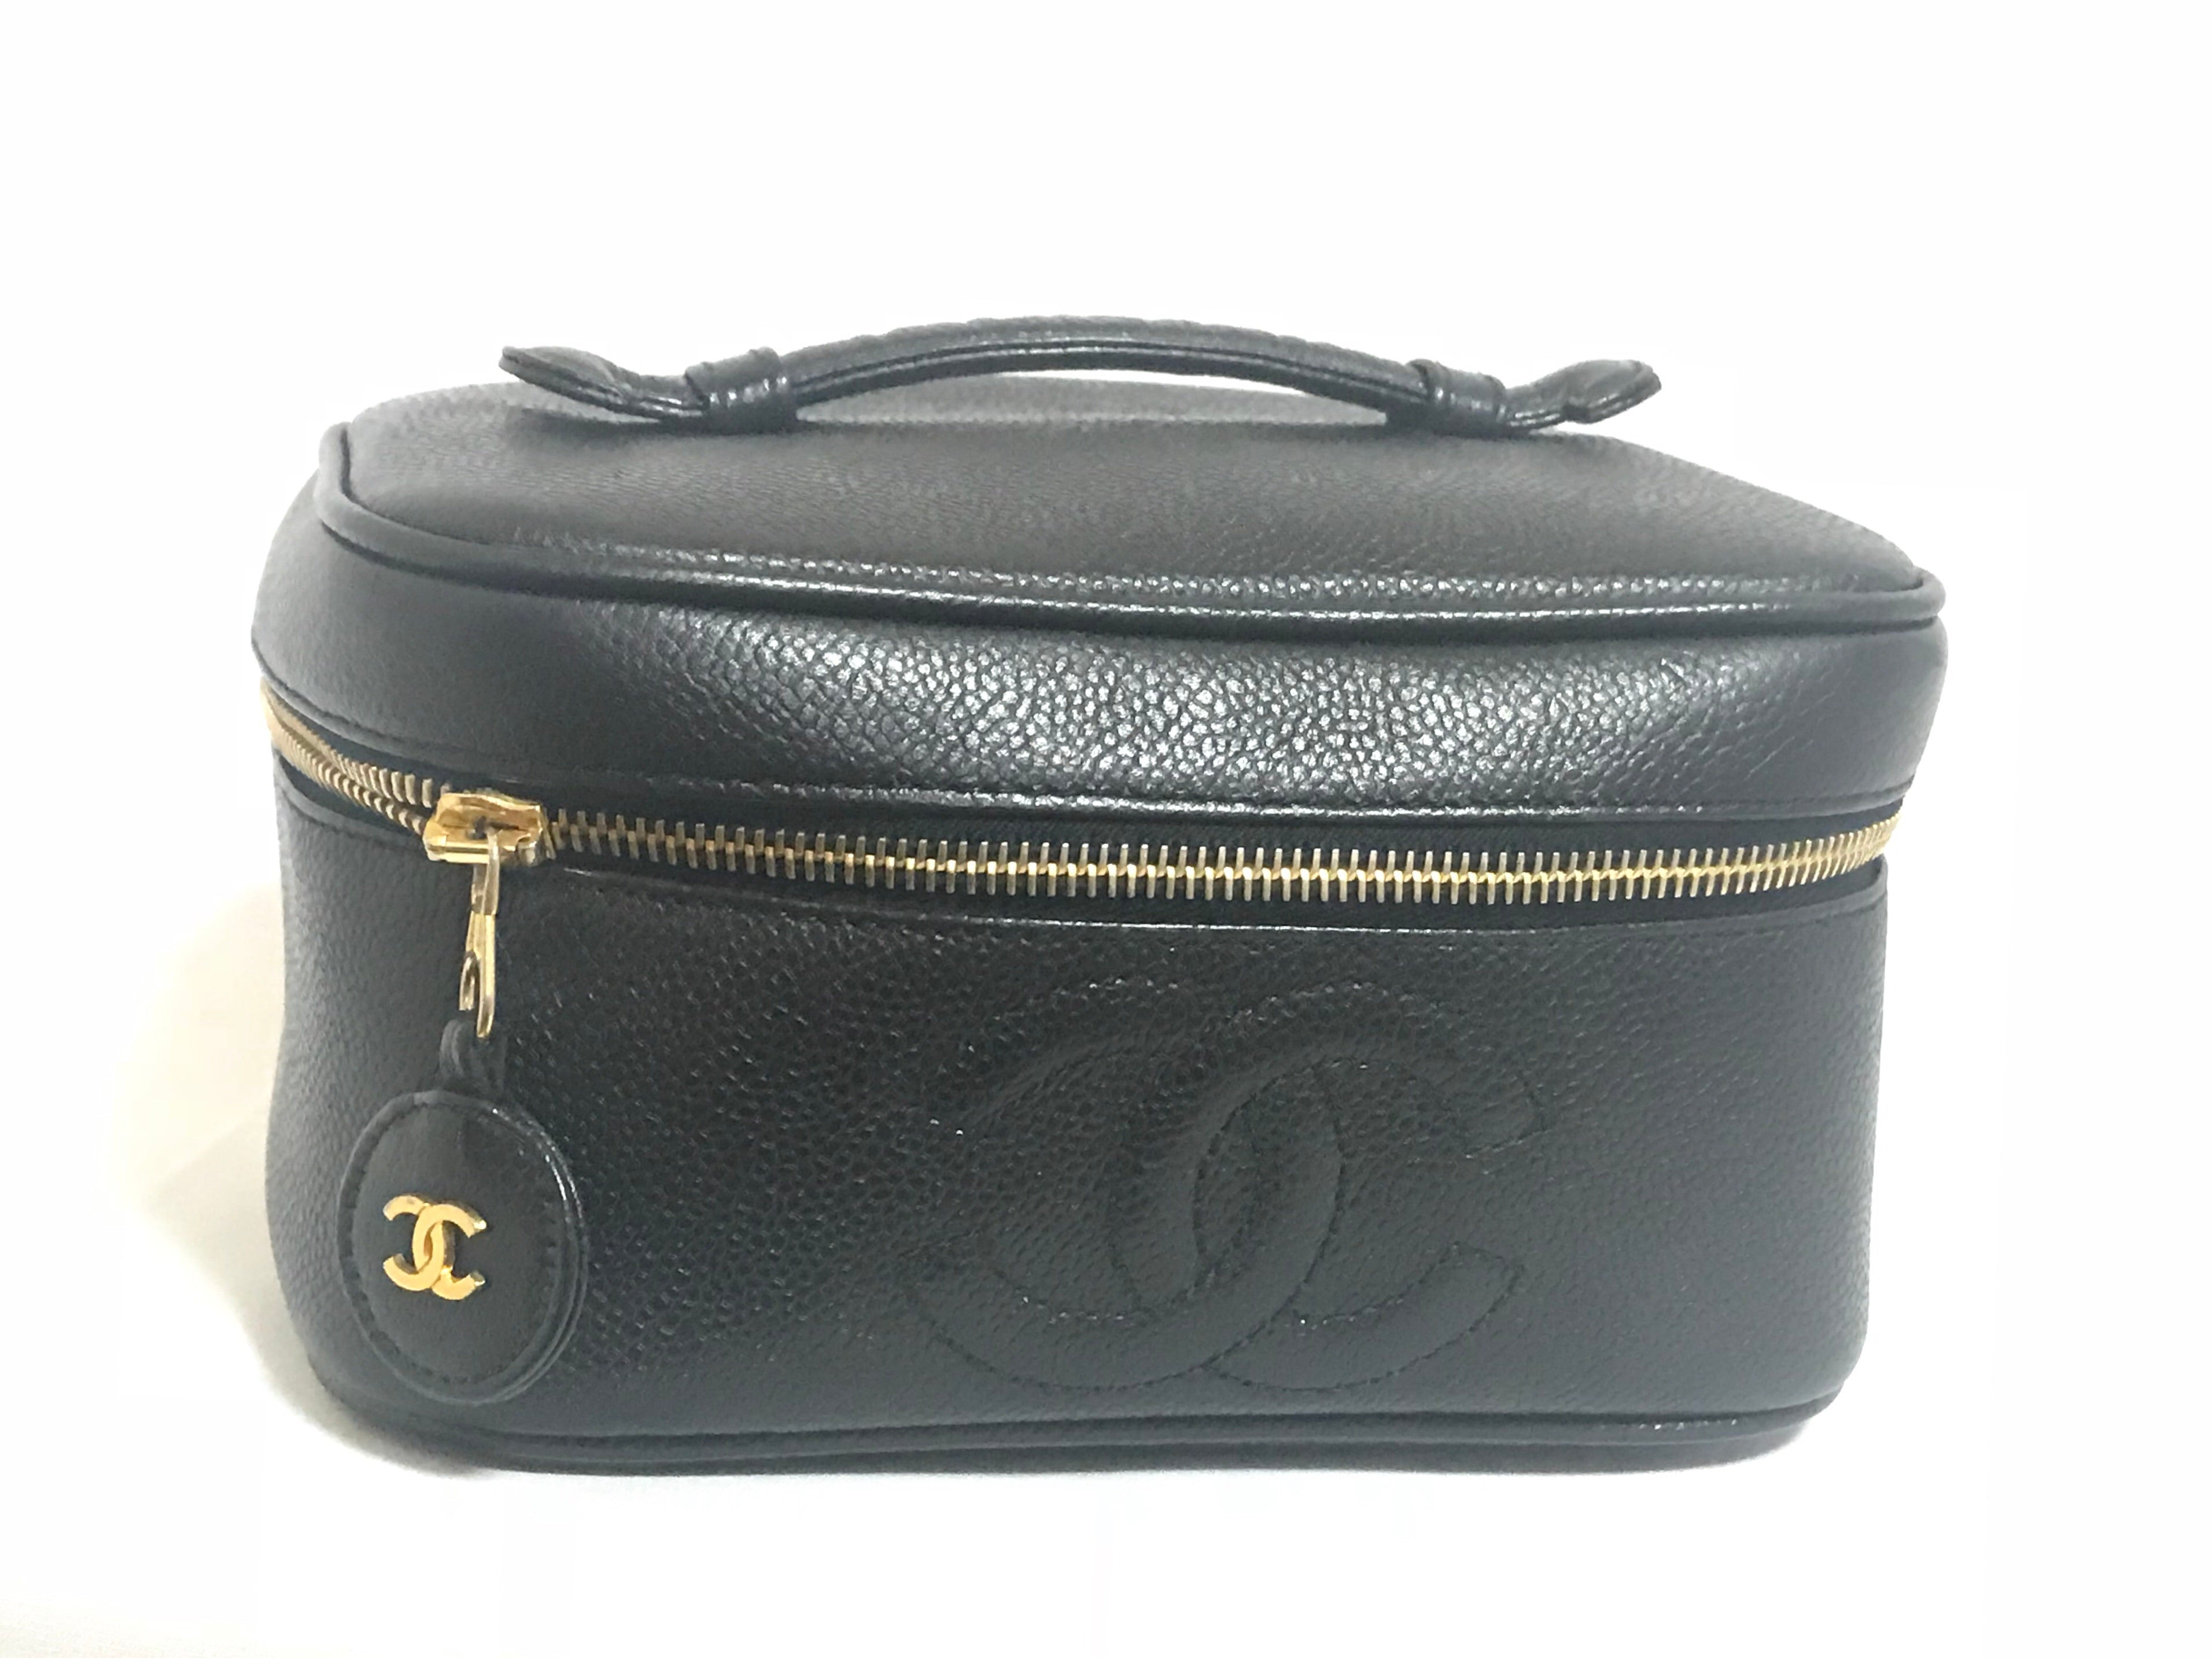 68fa9e3da372 Vintage CHANEL black caviar leather cosmetic, makeup and toiletry purse.  Very chic vanity purse